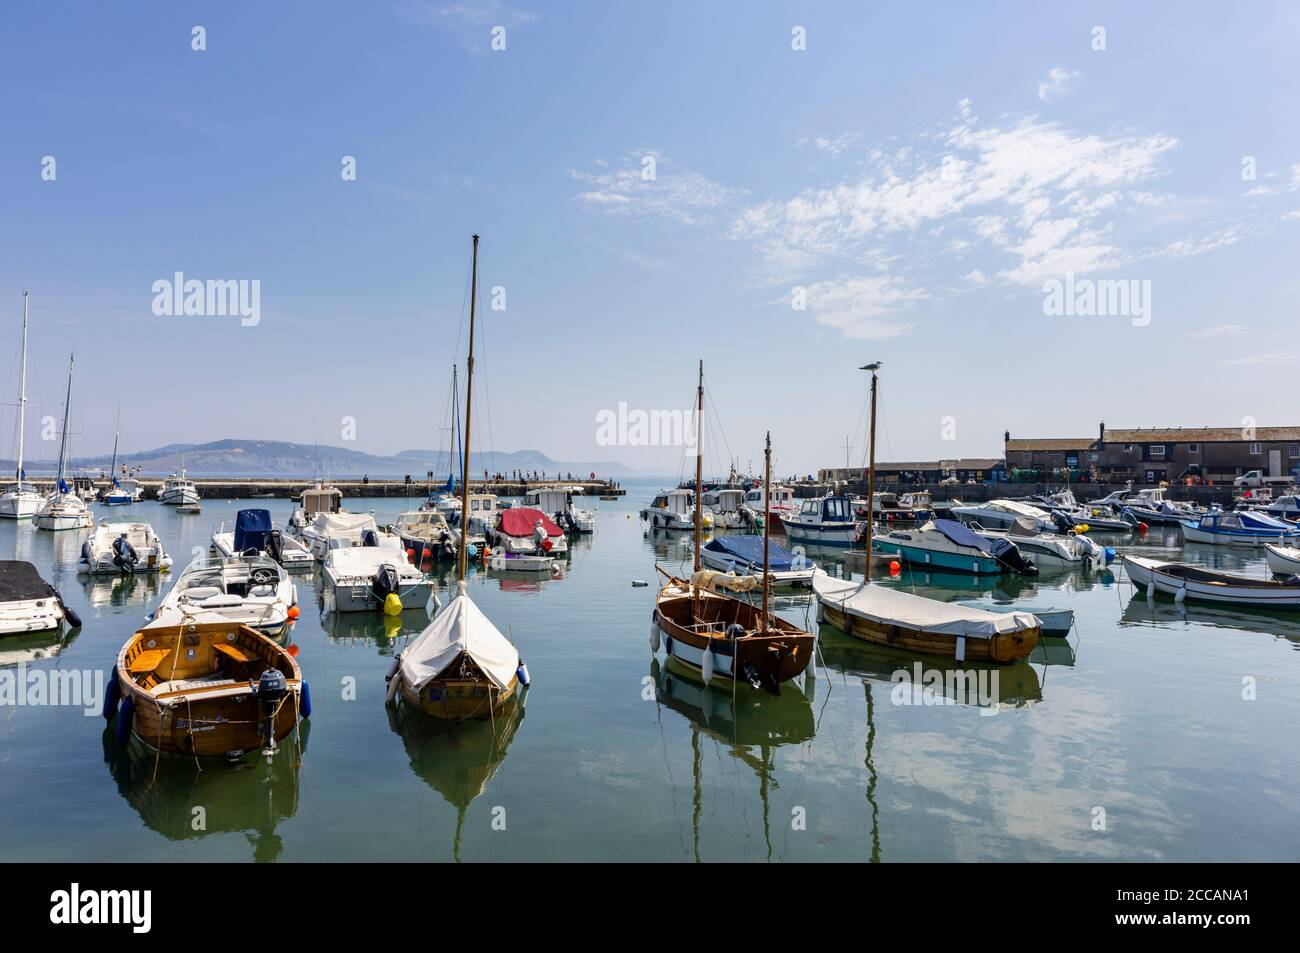 Sailing and motor boats moored at the Cobb in Lyme Regis, a popular seaside town holiday resort on the Jurassic Coast in Dorset, south-west England Stock Photo